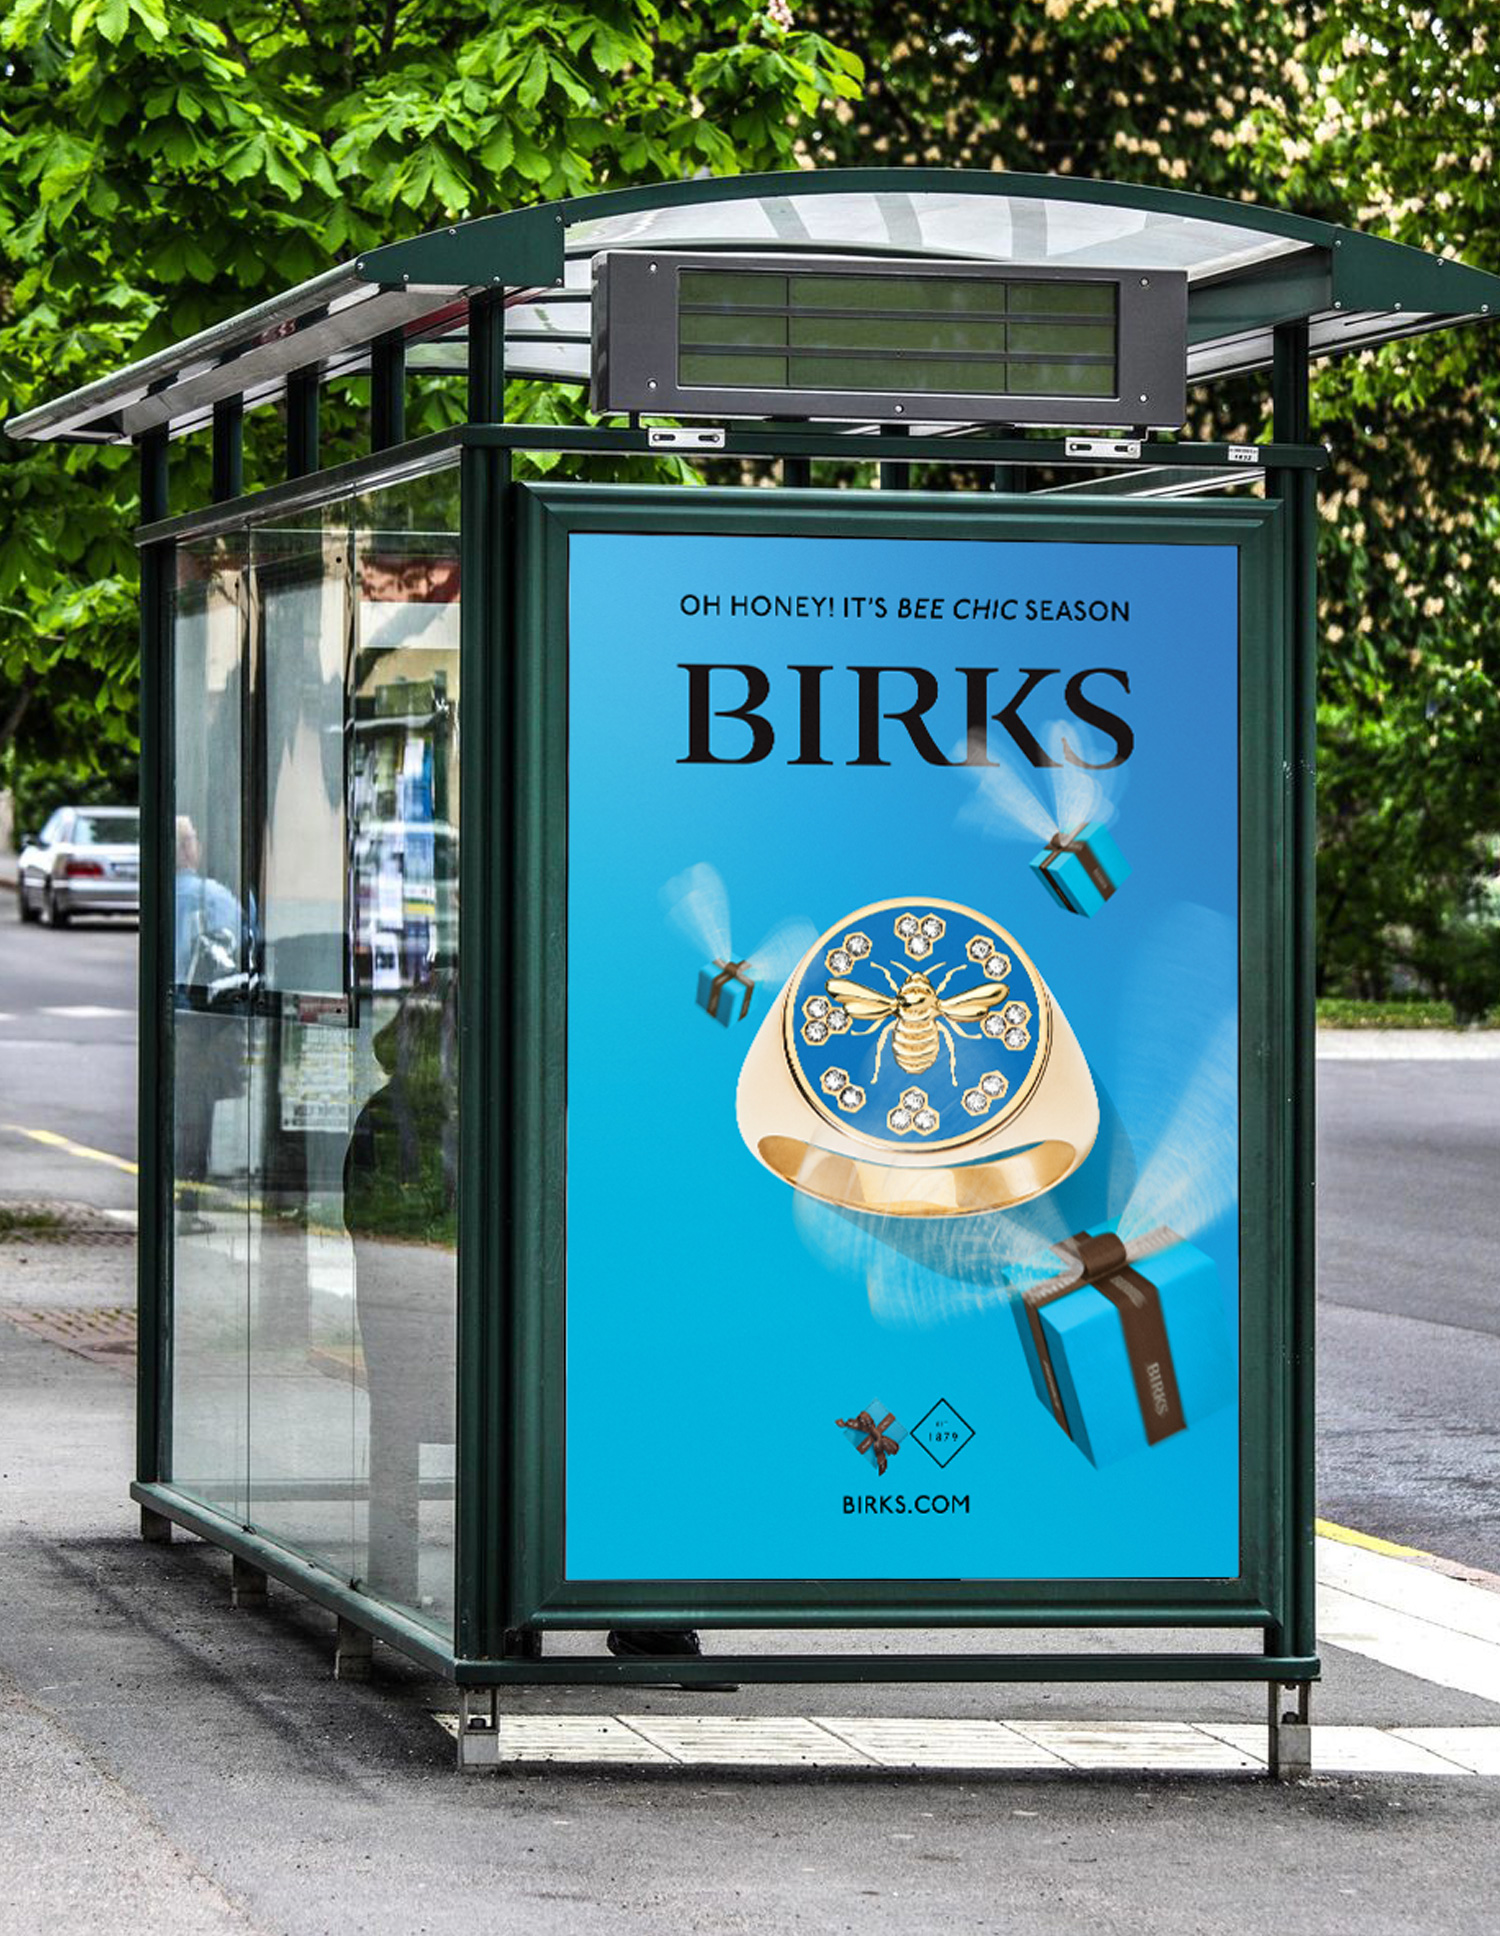 Conceptual advertising campaign for jewellery brand Birks (Bee Chic Collection) by Guillaume Briere, a creative director specialized in luxury brands based in Montréal and Toronto. On-model and still life photography.